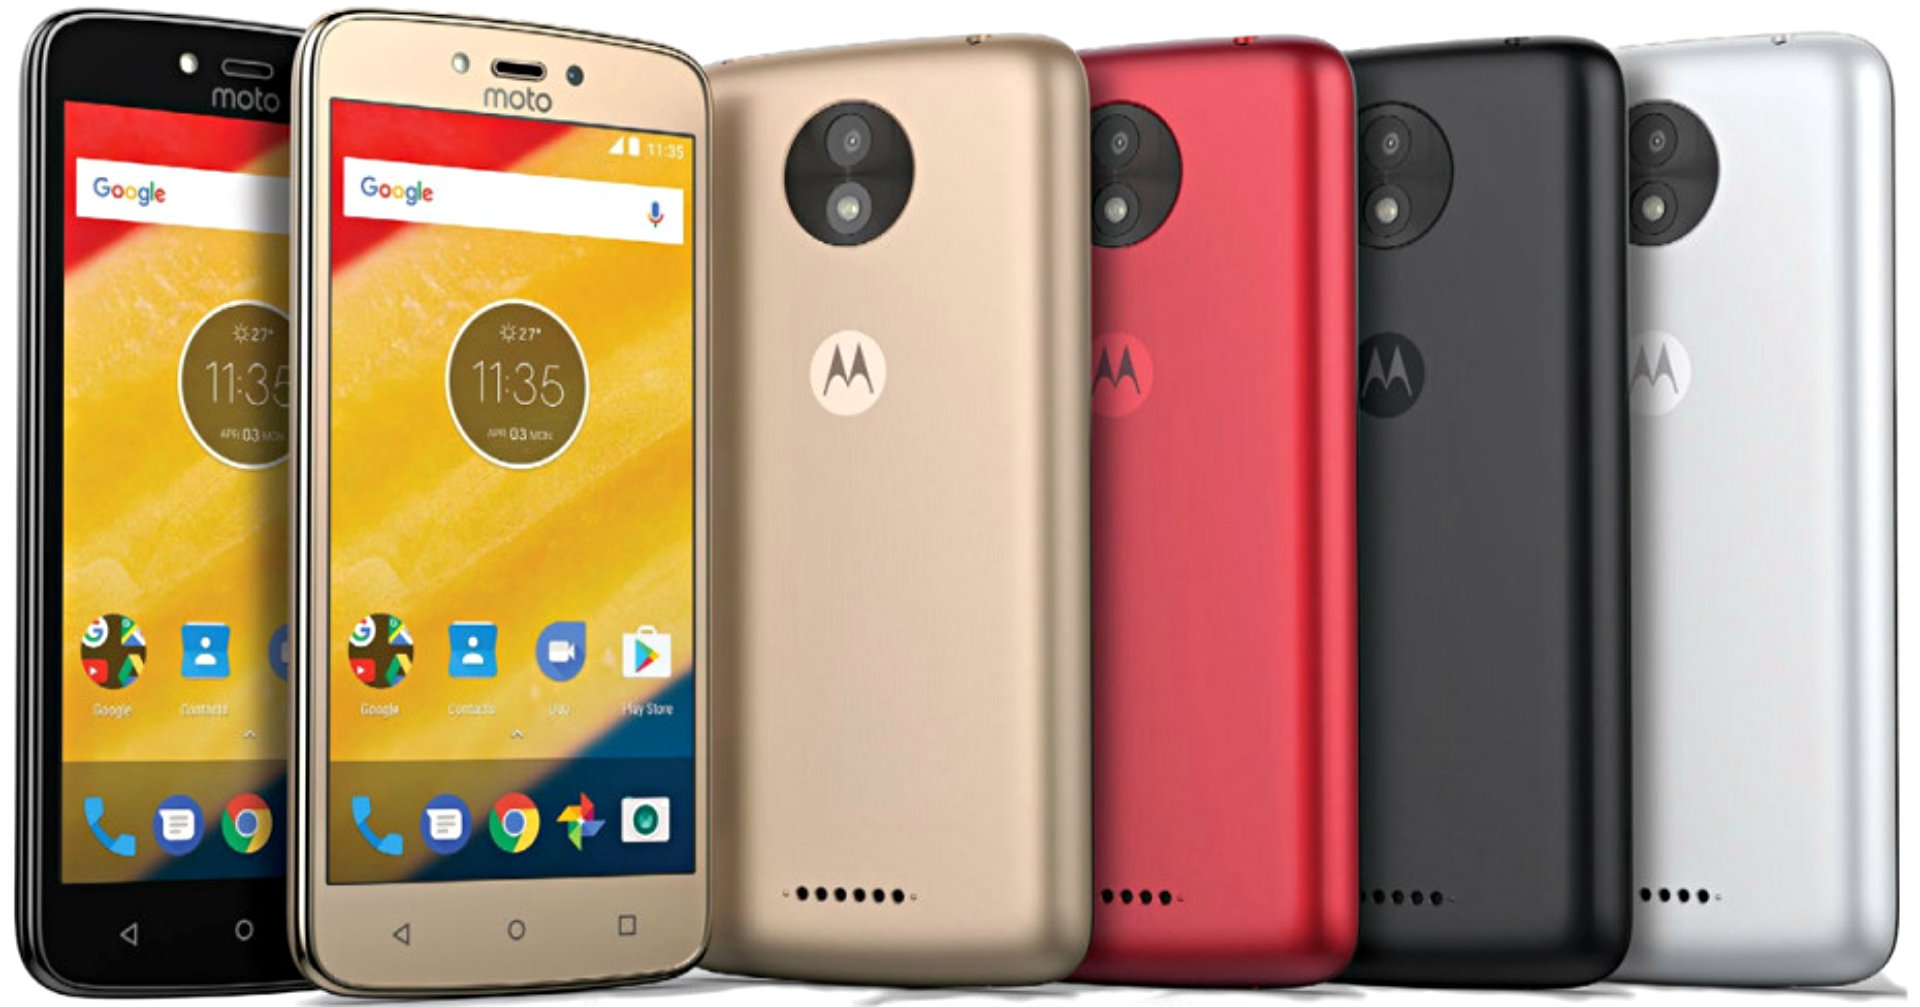 Moto C and Moto C Plus: Latest Announcements of UK Price, Release Date & Specifications